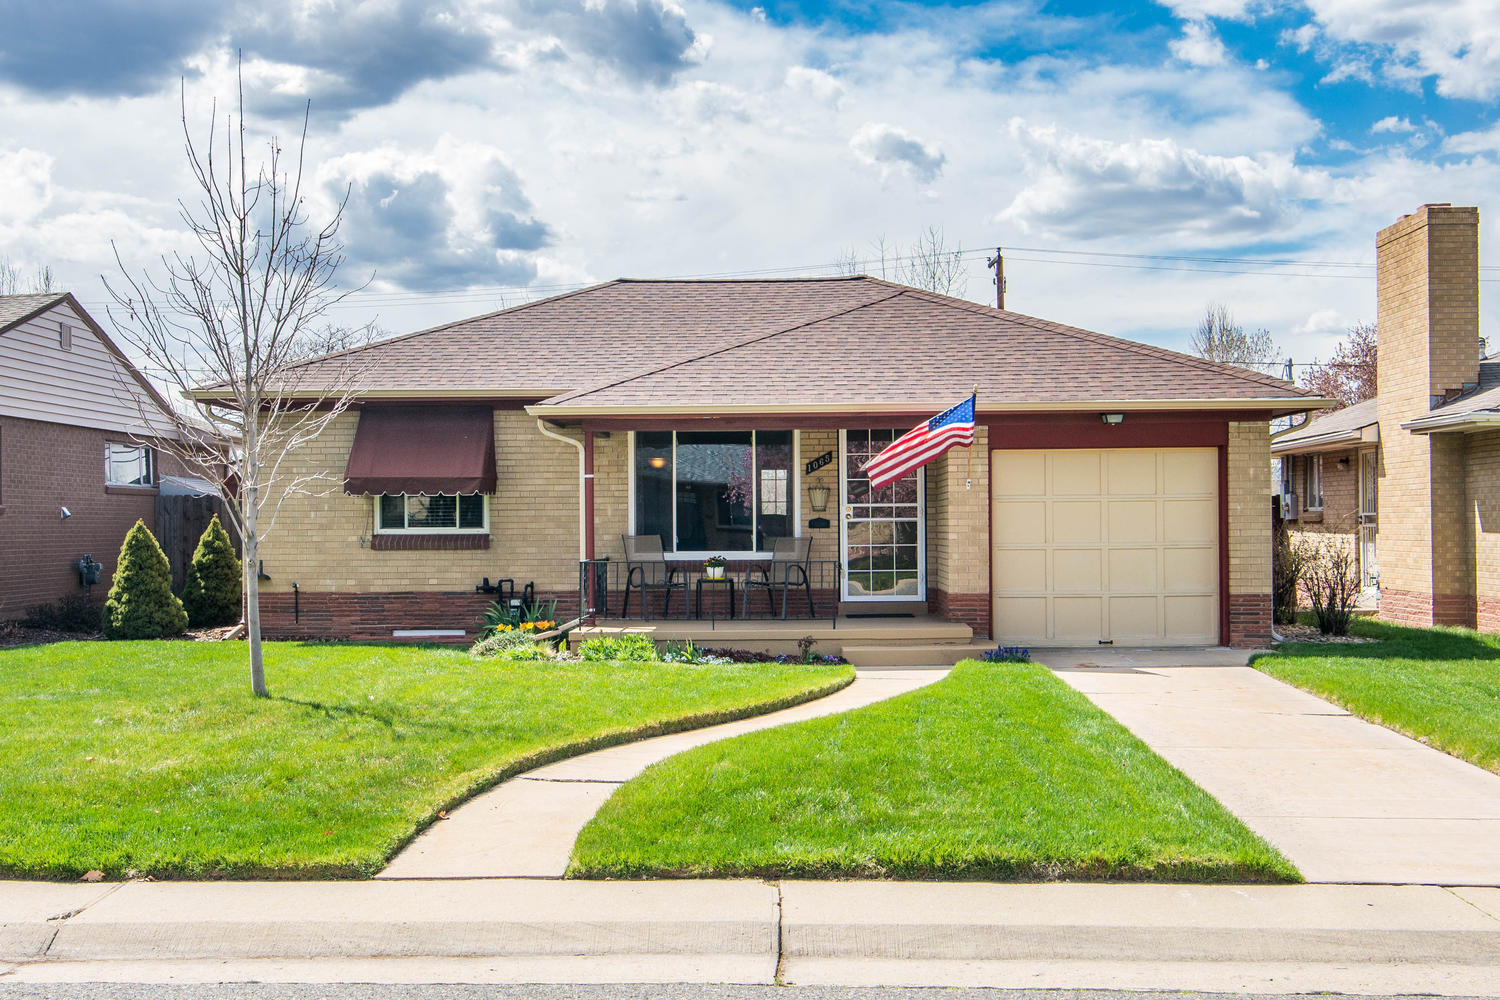 Single Family Home for Sale at Scintillating 3-bedroom, 2-bath Cory-Merrill home! 1065 South Harrison Street Cory-Merrill, Denver, Colorado, 80209 United States